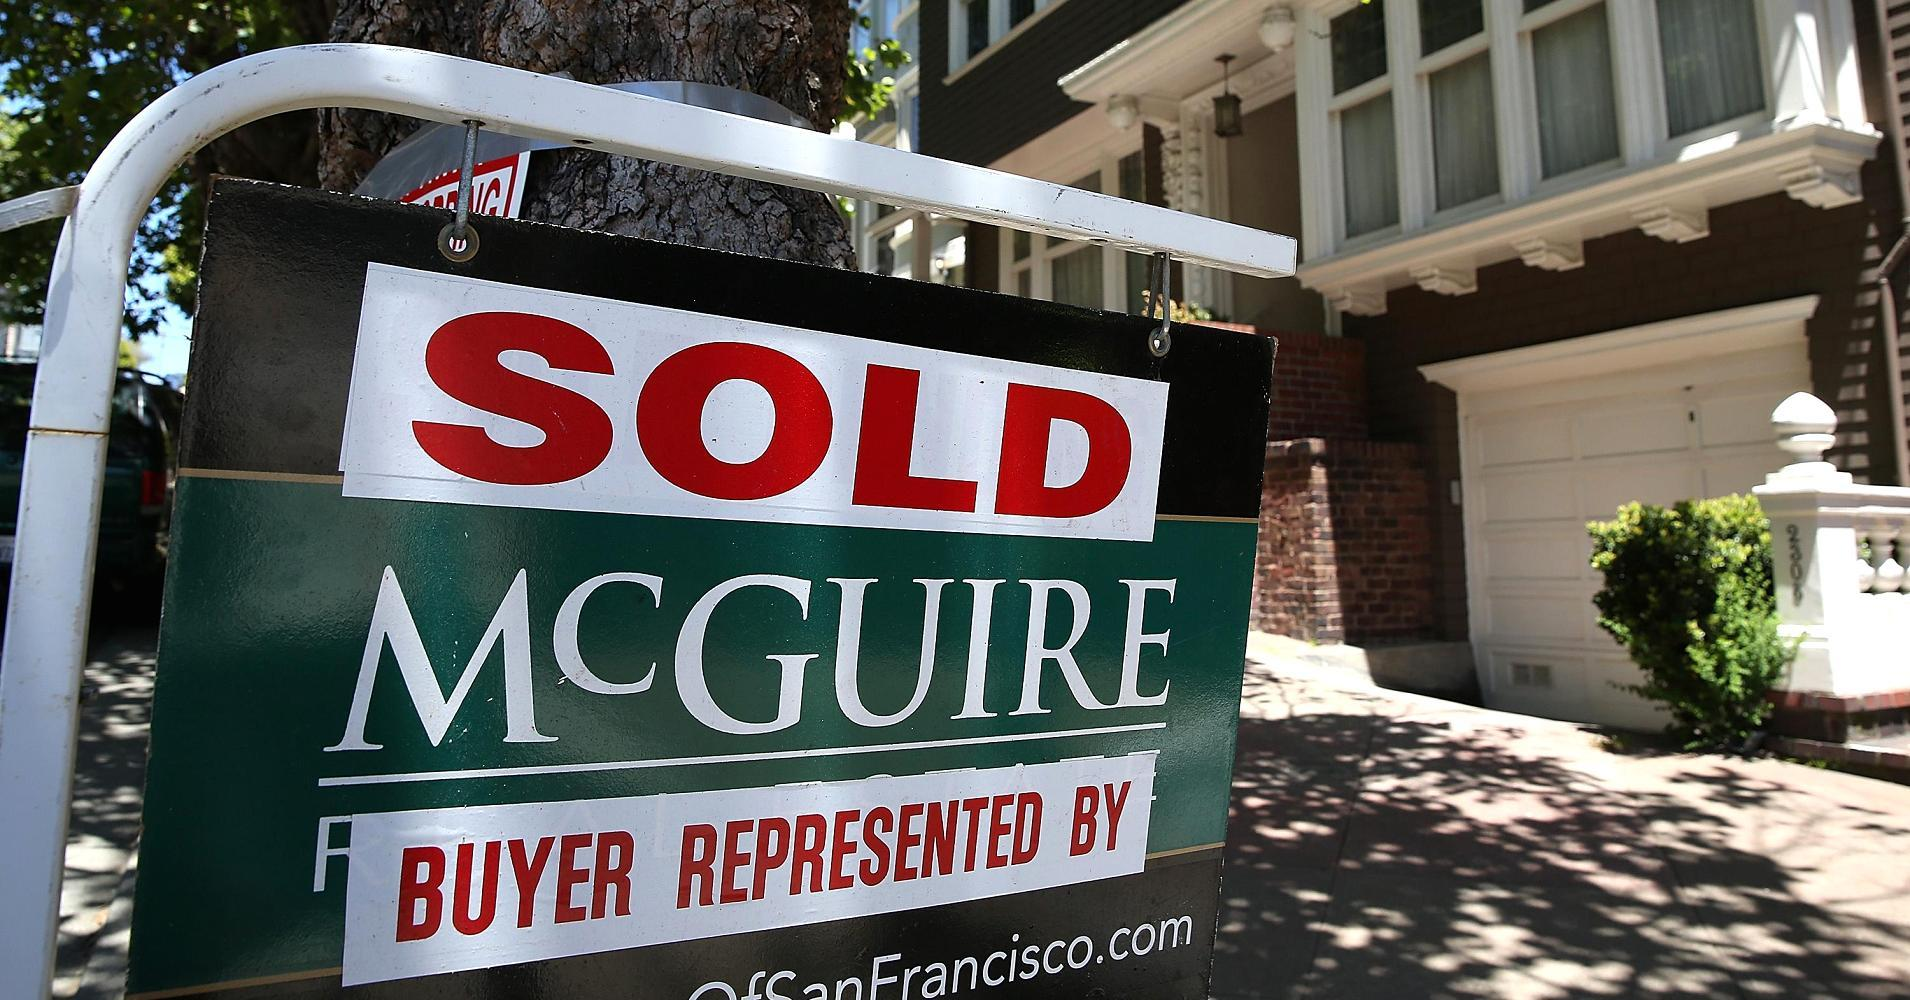 This will be a good year for housing: Economist